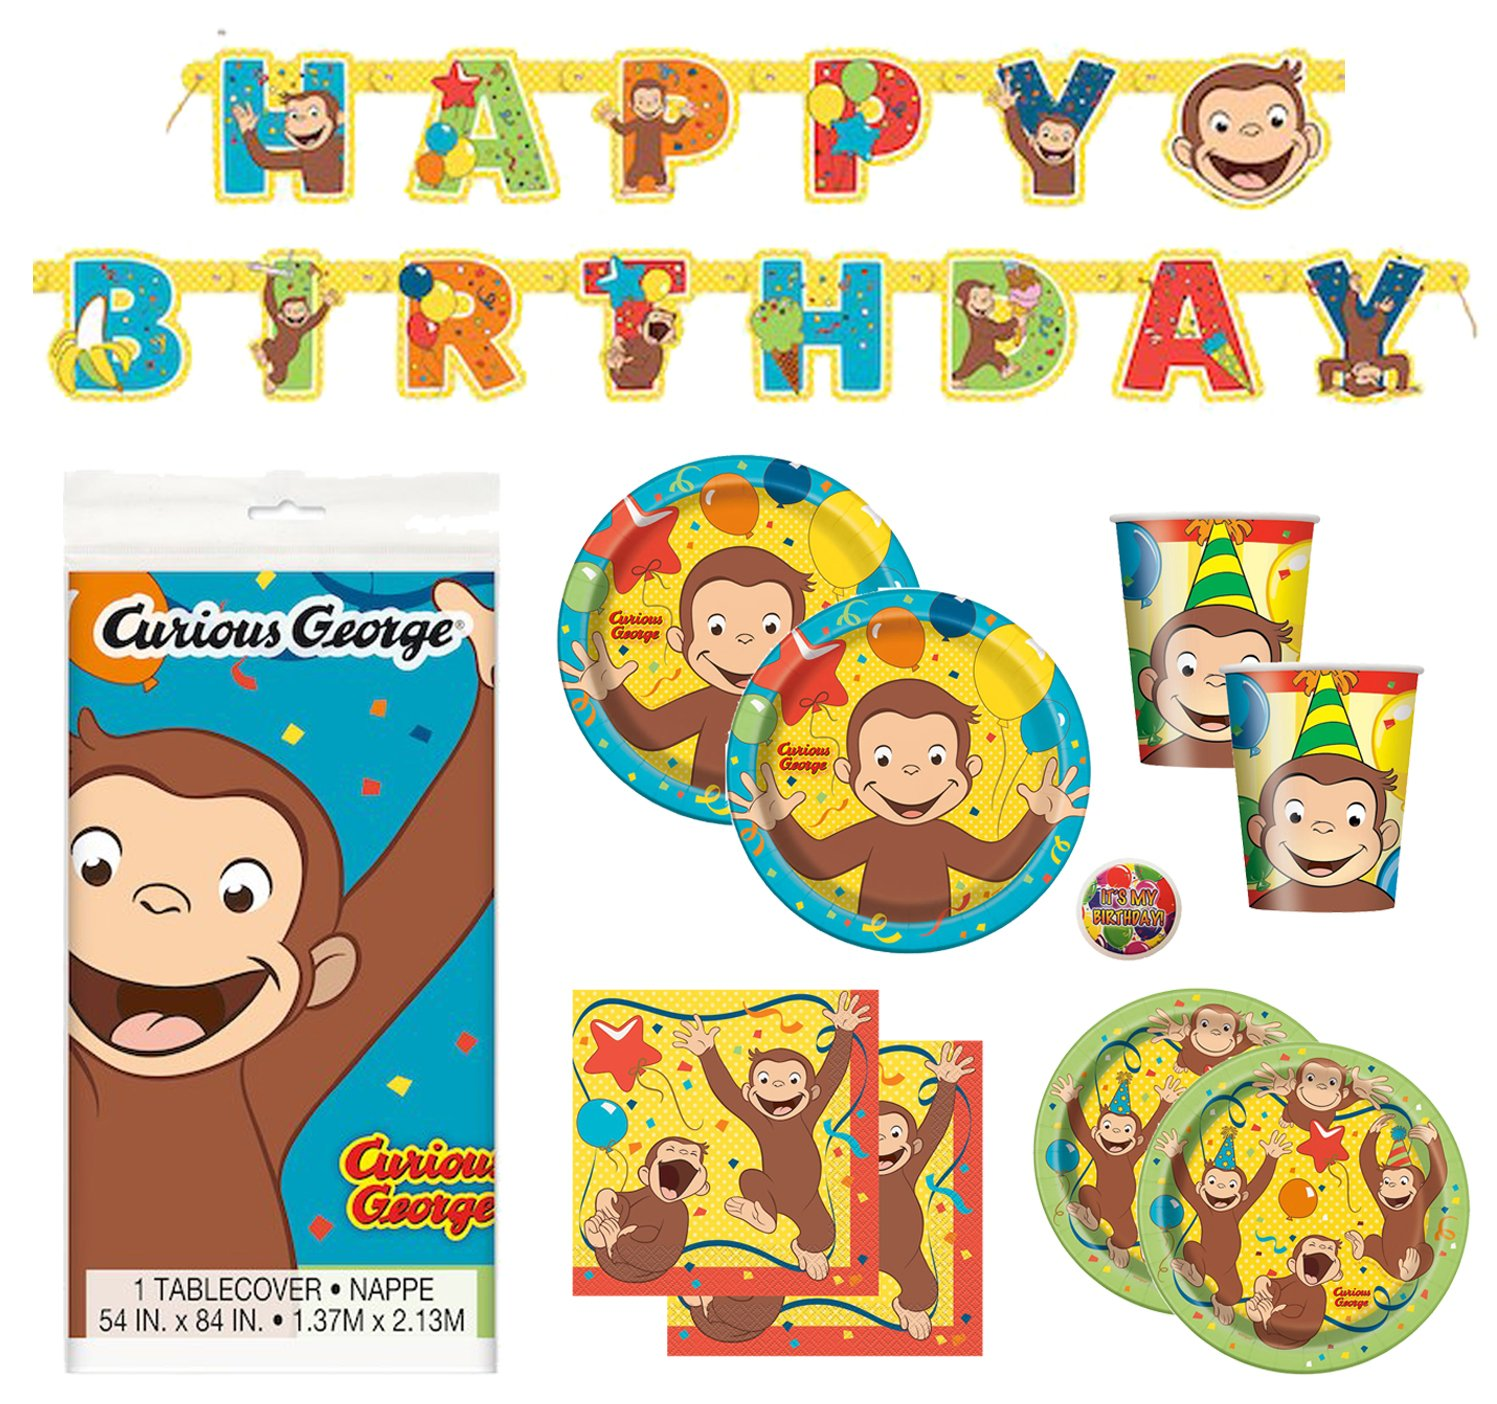 Deluxe Curious George Children's Birthday Party Supplies Pack with Decorations - Serves 16 by Curious George